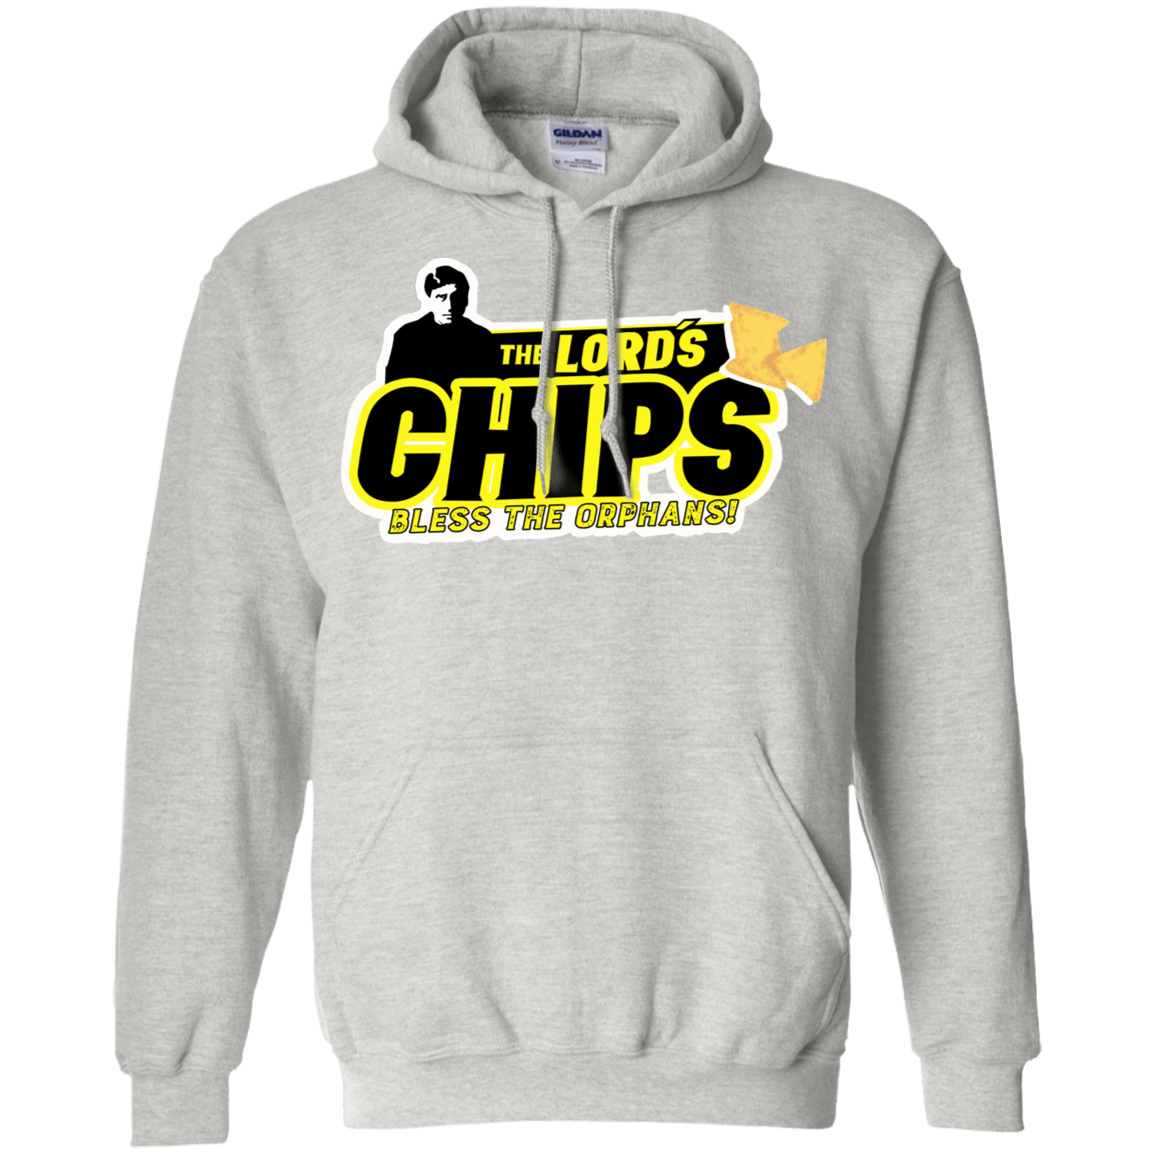 The Lord´s Chips 541-4748-74046944-23071 - Tee Ript